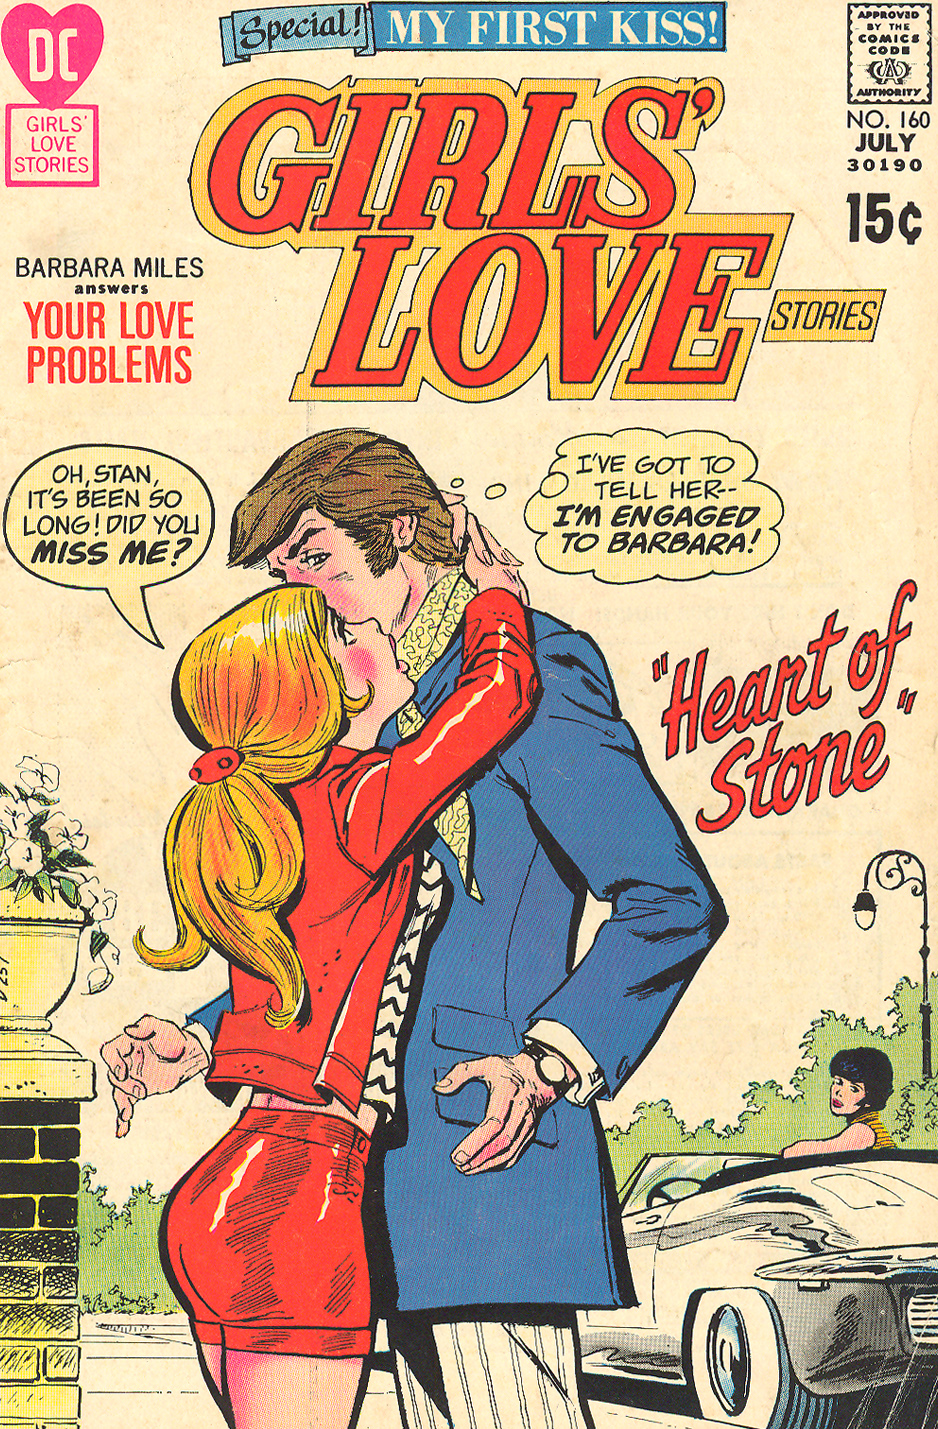 Girls' Love Stories #160 (July 1971) Cover pencils by Saaf, inks by Dick Giordano